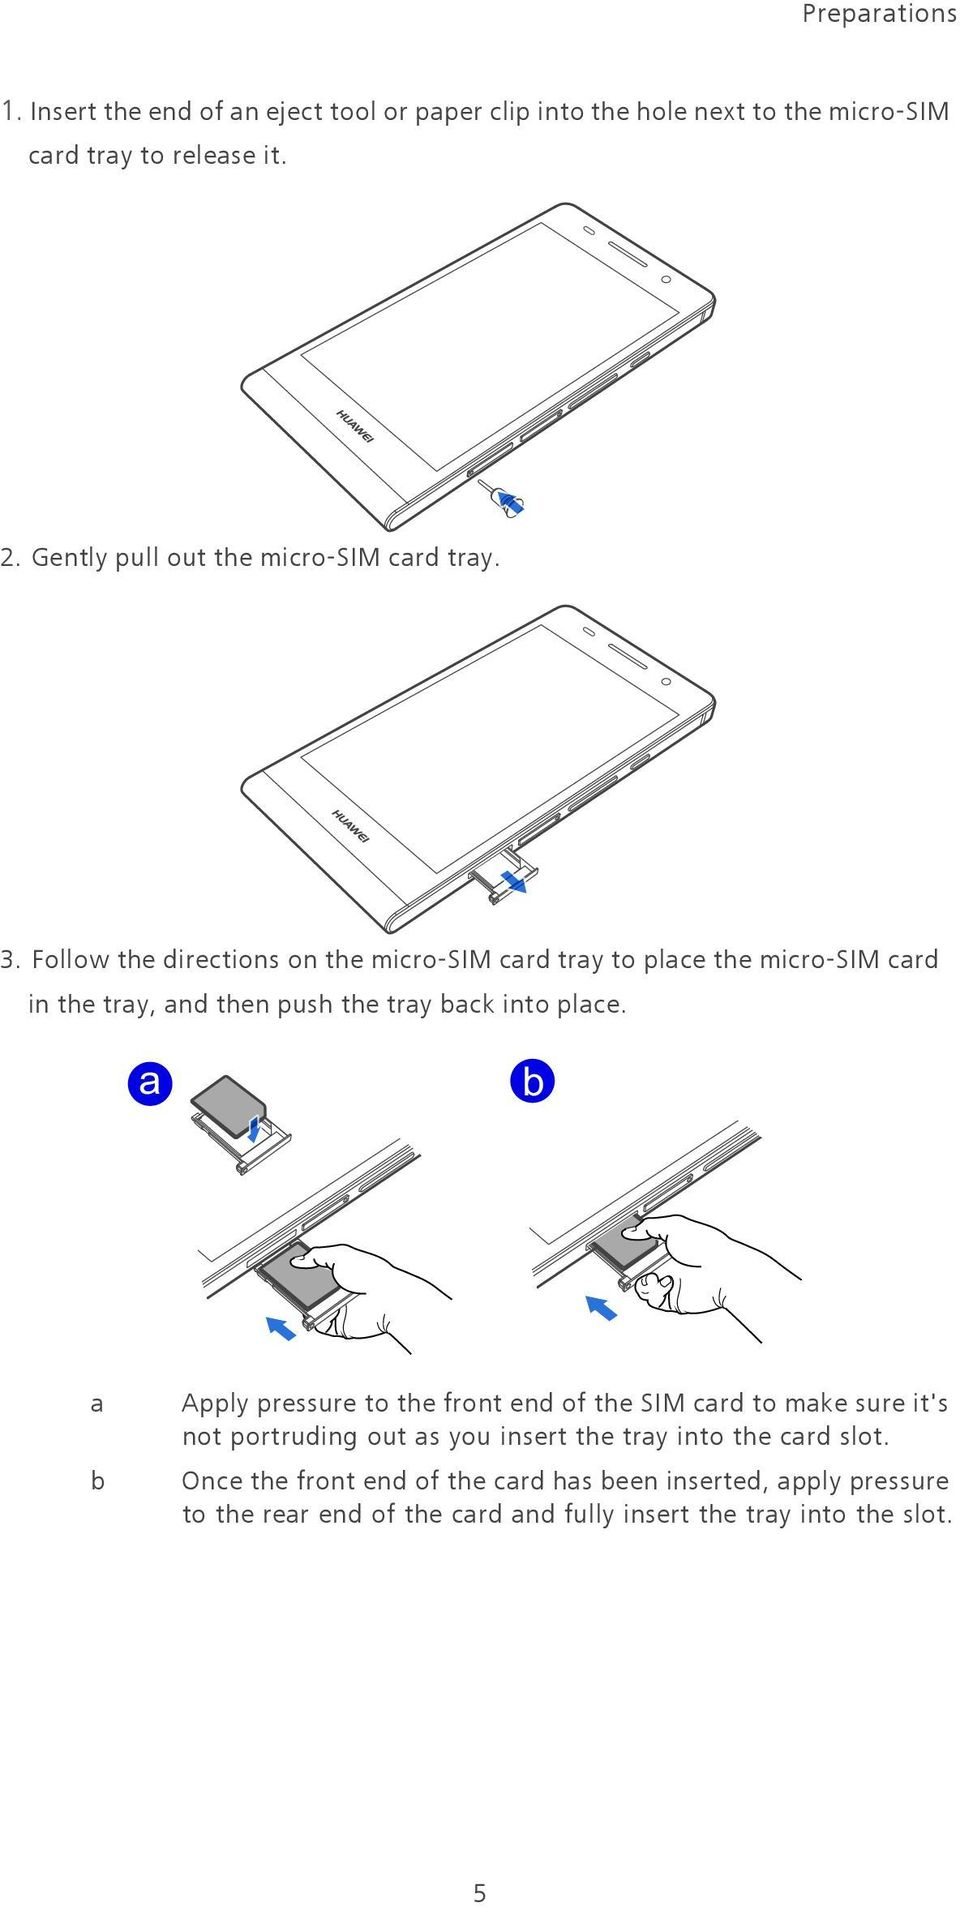 Follow the directions on the micro-sim card tray to place the micro-sim card in the tray, and then push the tray back into place.